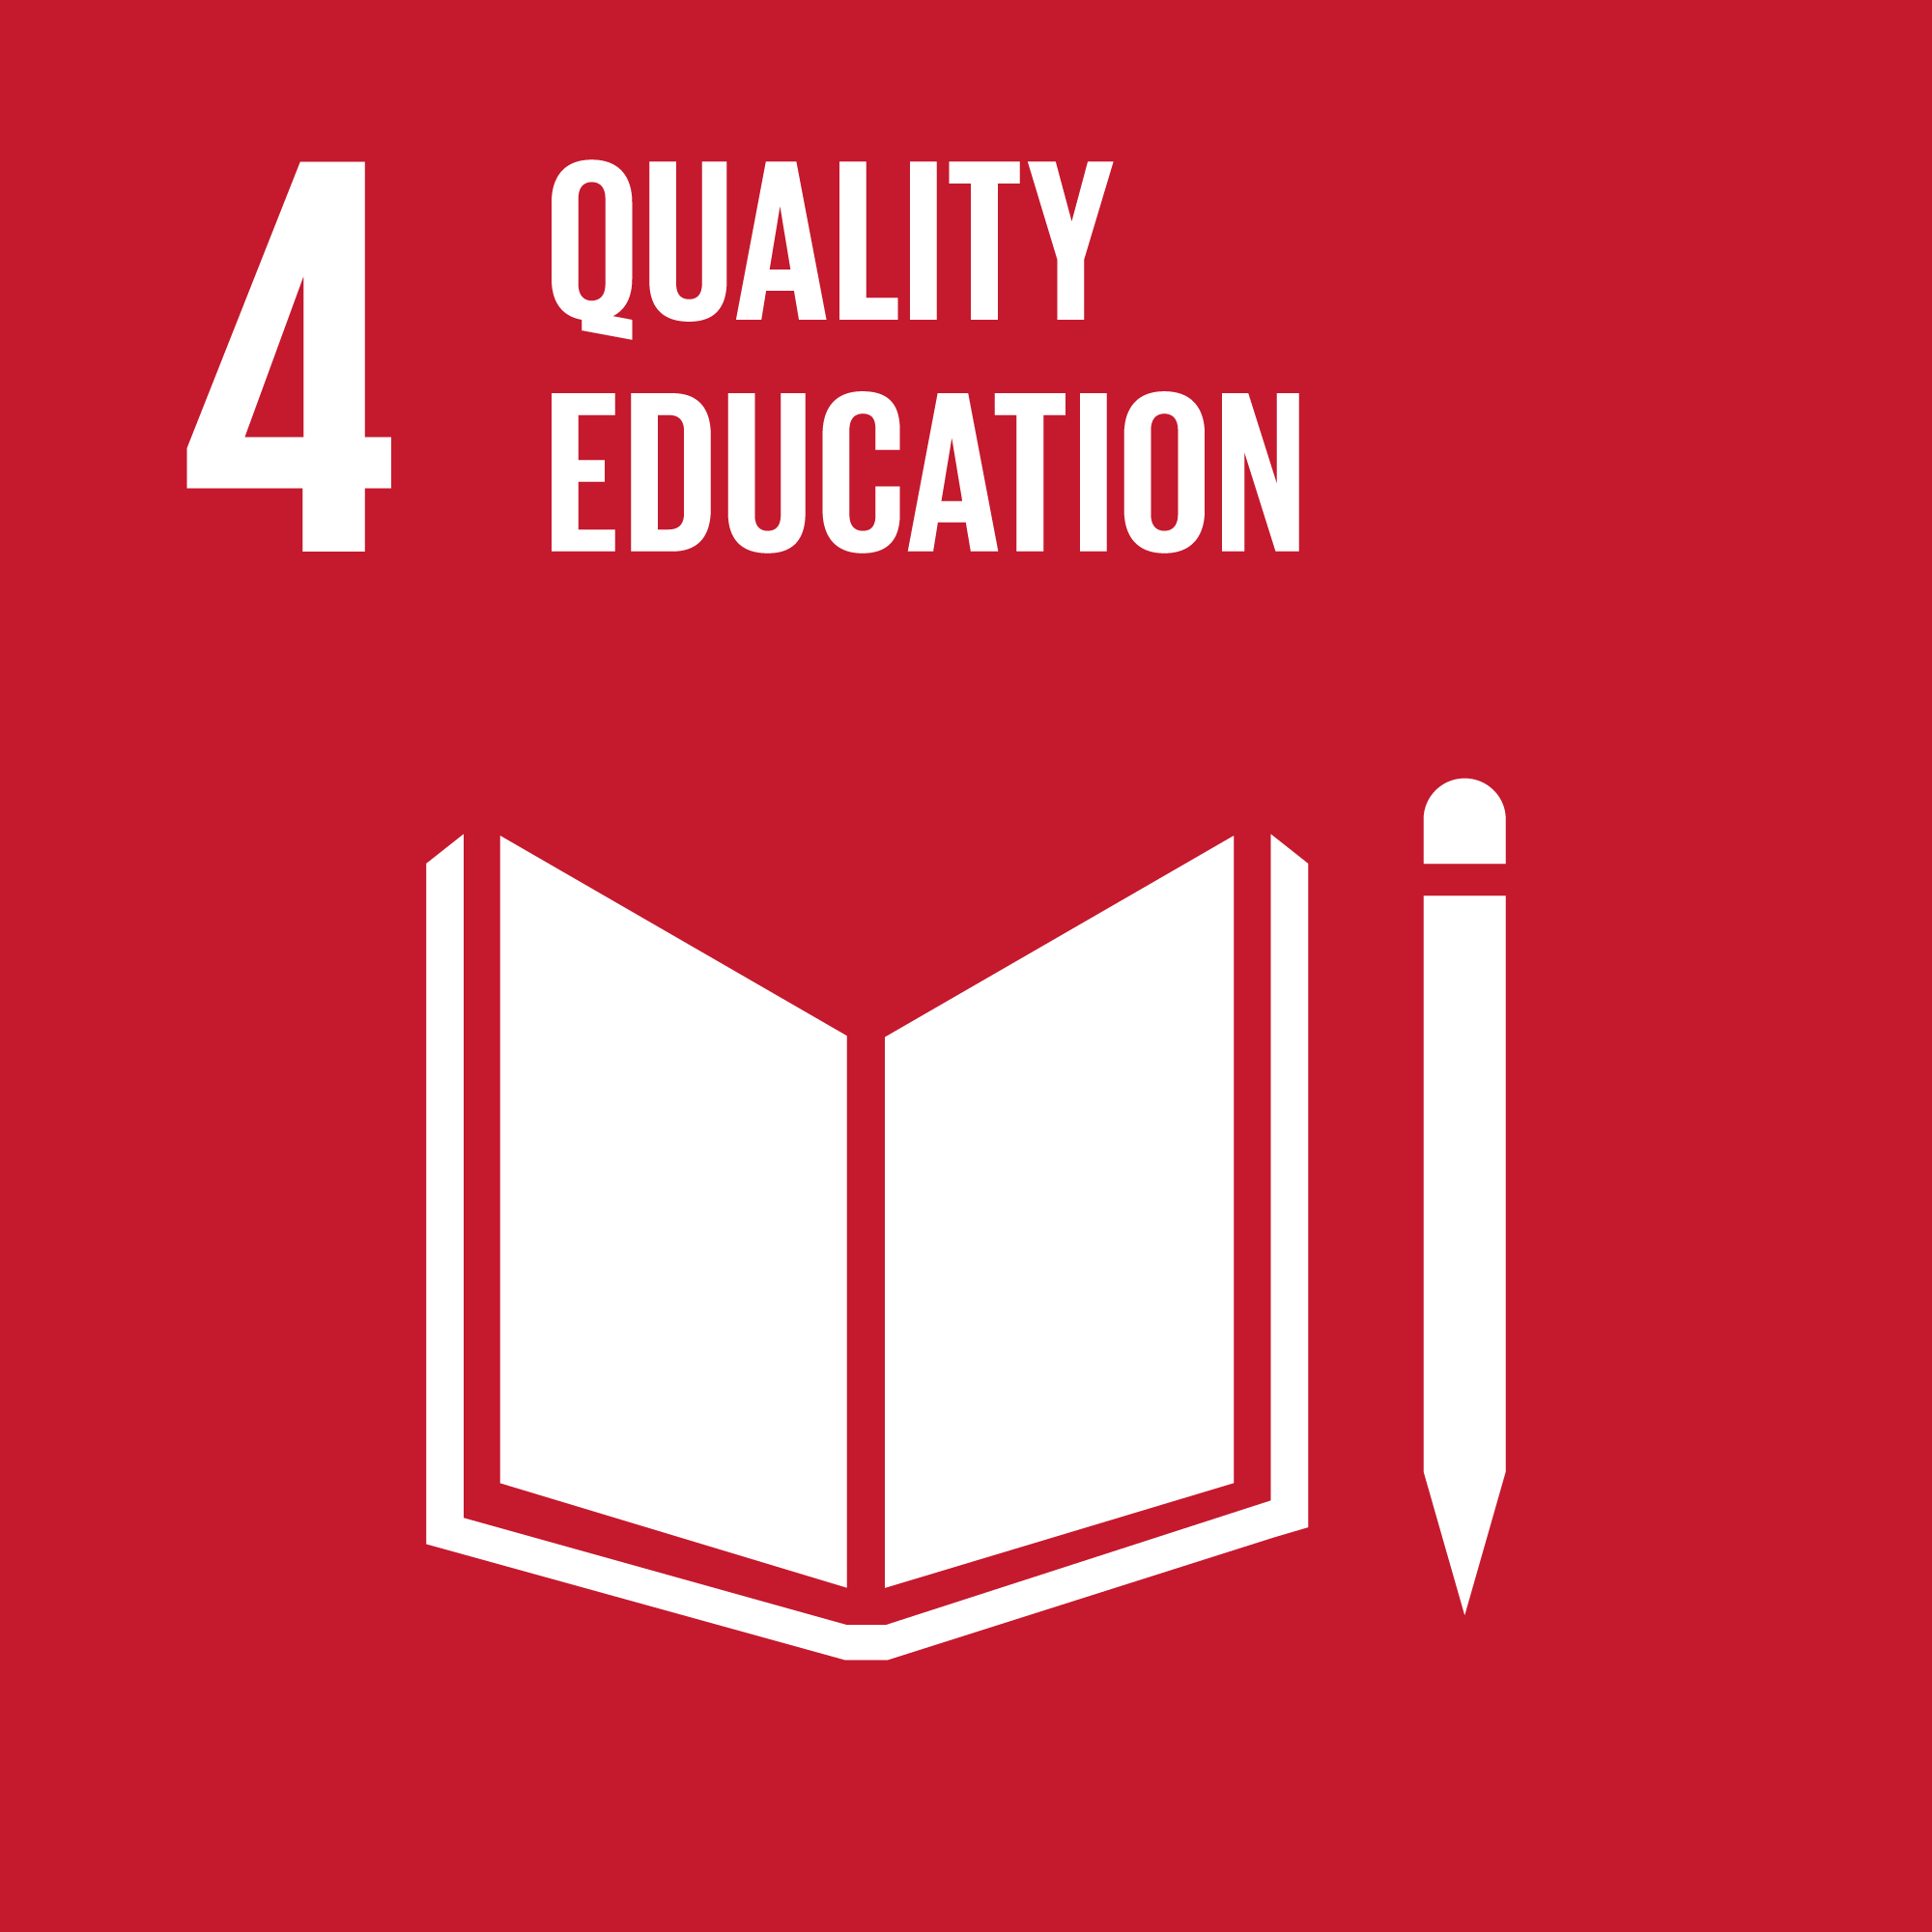 Goal 4. Ensure inclusive and equitable quality education and promote lifelong learning opportunities for al l   10 Targets    11 Indicators